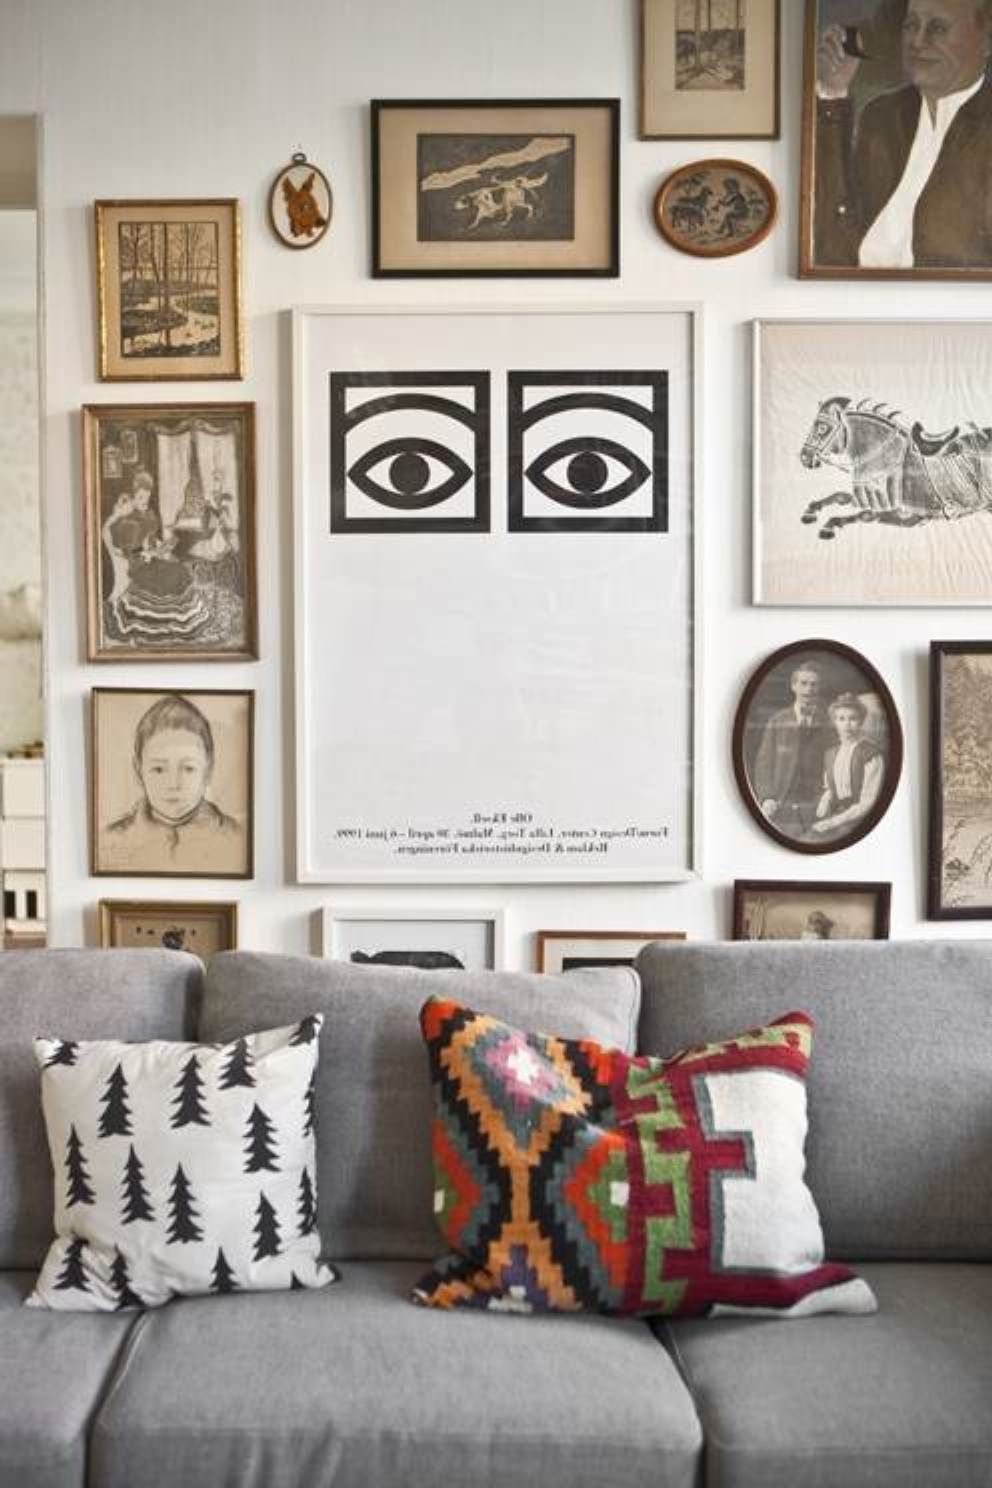 Decoration Unique Wall Art Ideas With Tribal Printed Toss Pillows For Afrian Themed Living Room Modern Grey Sofa Cool Any Rooms In